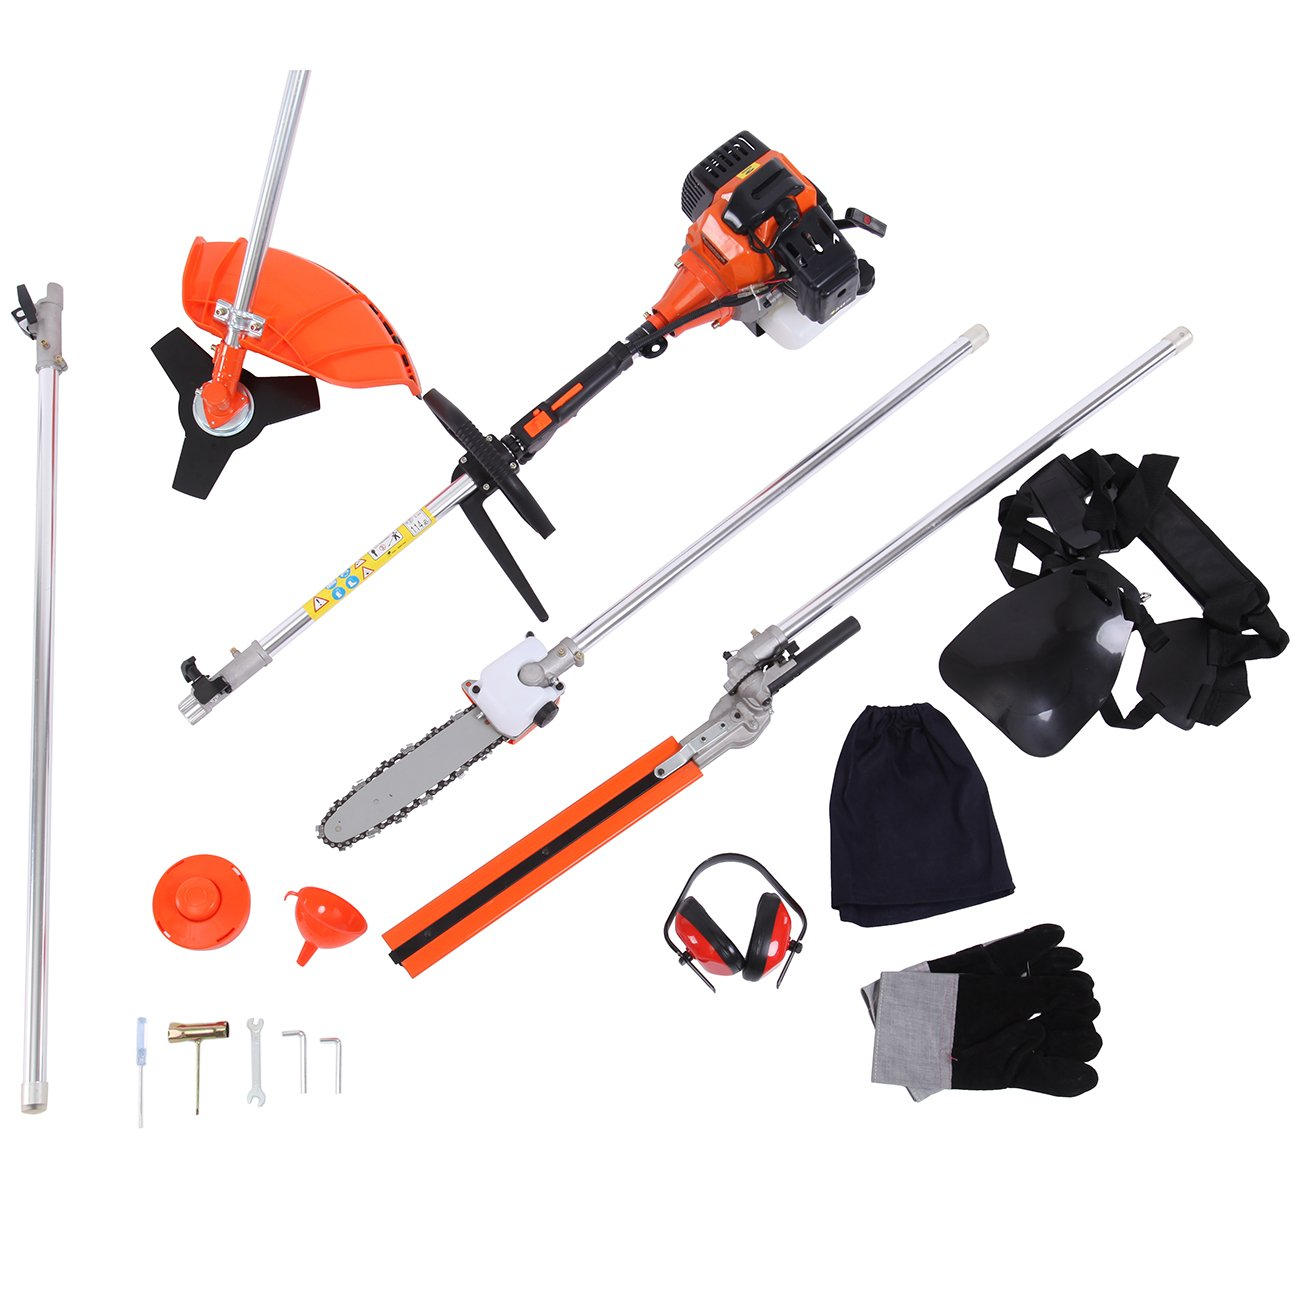 Iglobalbuy 5 In 1 52 Cc Multifunctional 2 Stroke Petrol Brush Cutter Grass Trimmer Chainsaw Hedge Trimmer Extension Pole by Iglobalbuy Ltd